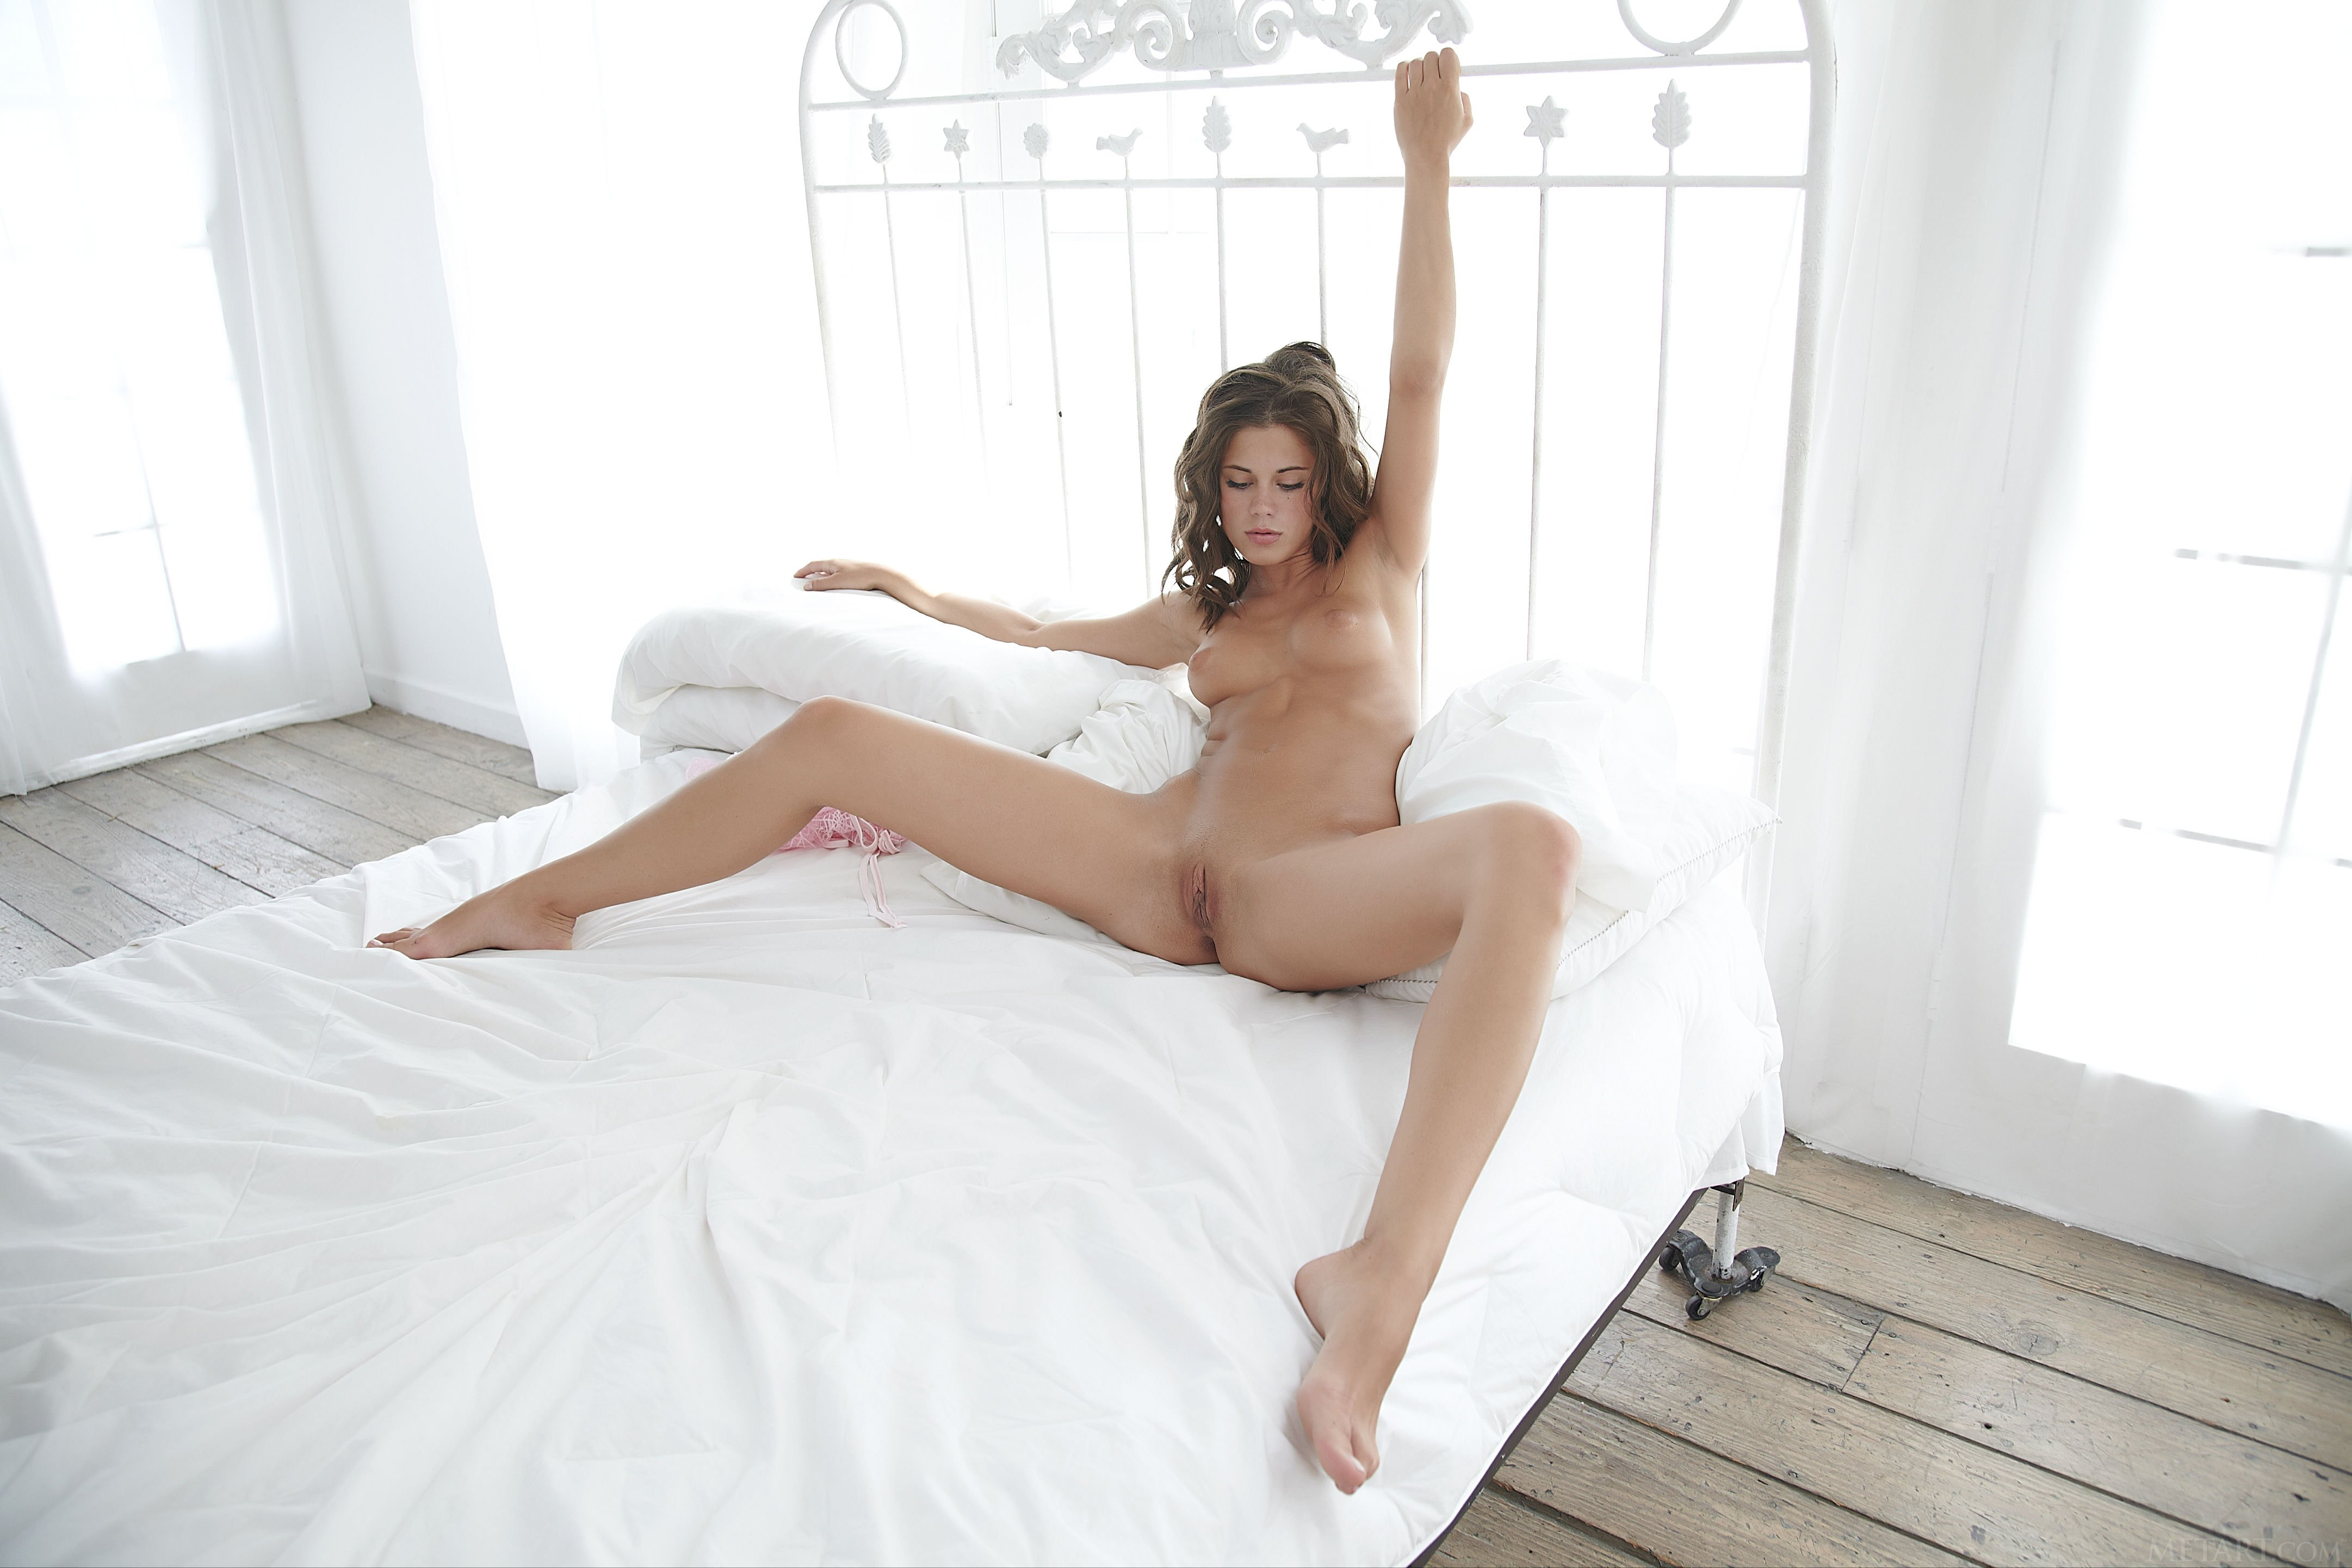 Her first sybian ride #1